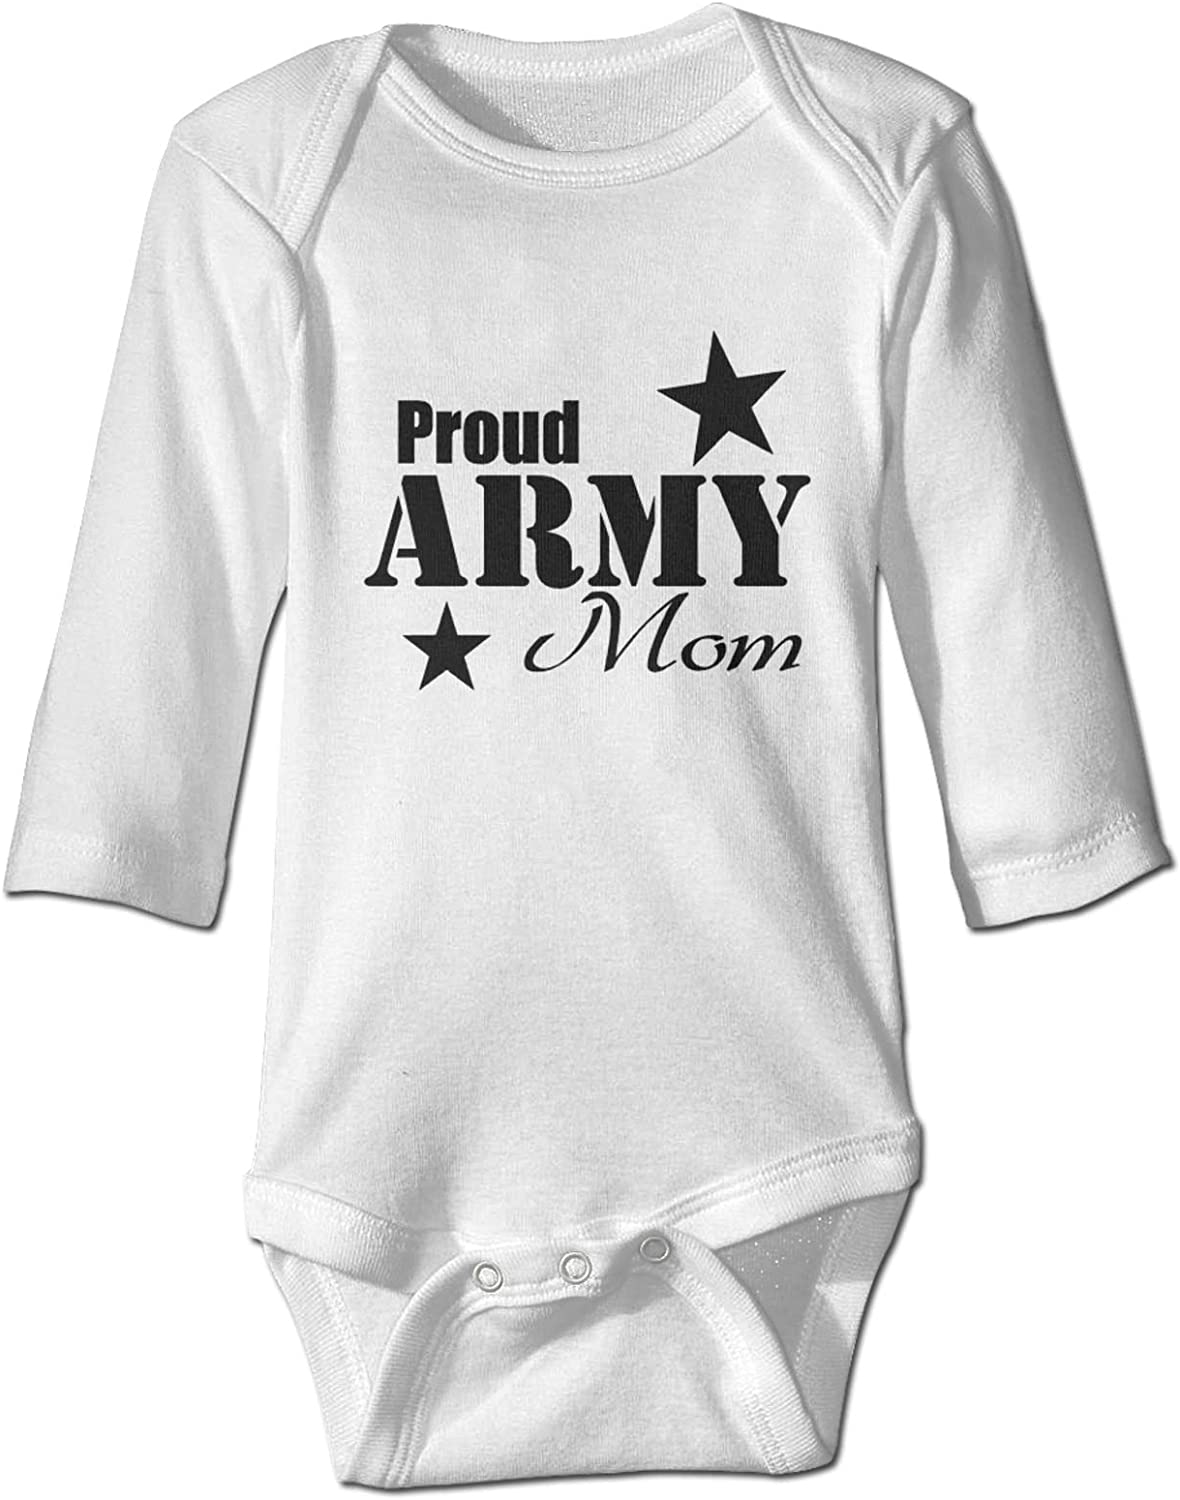 Dongzhongtangong 40% OFF Cheap Sale Limited time cheap sale Proud Army Mom Baby's Sle Jumpsuit Toddler Long